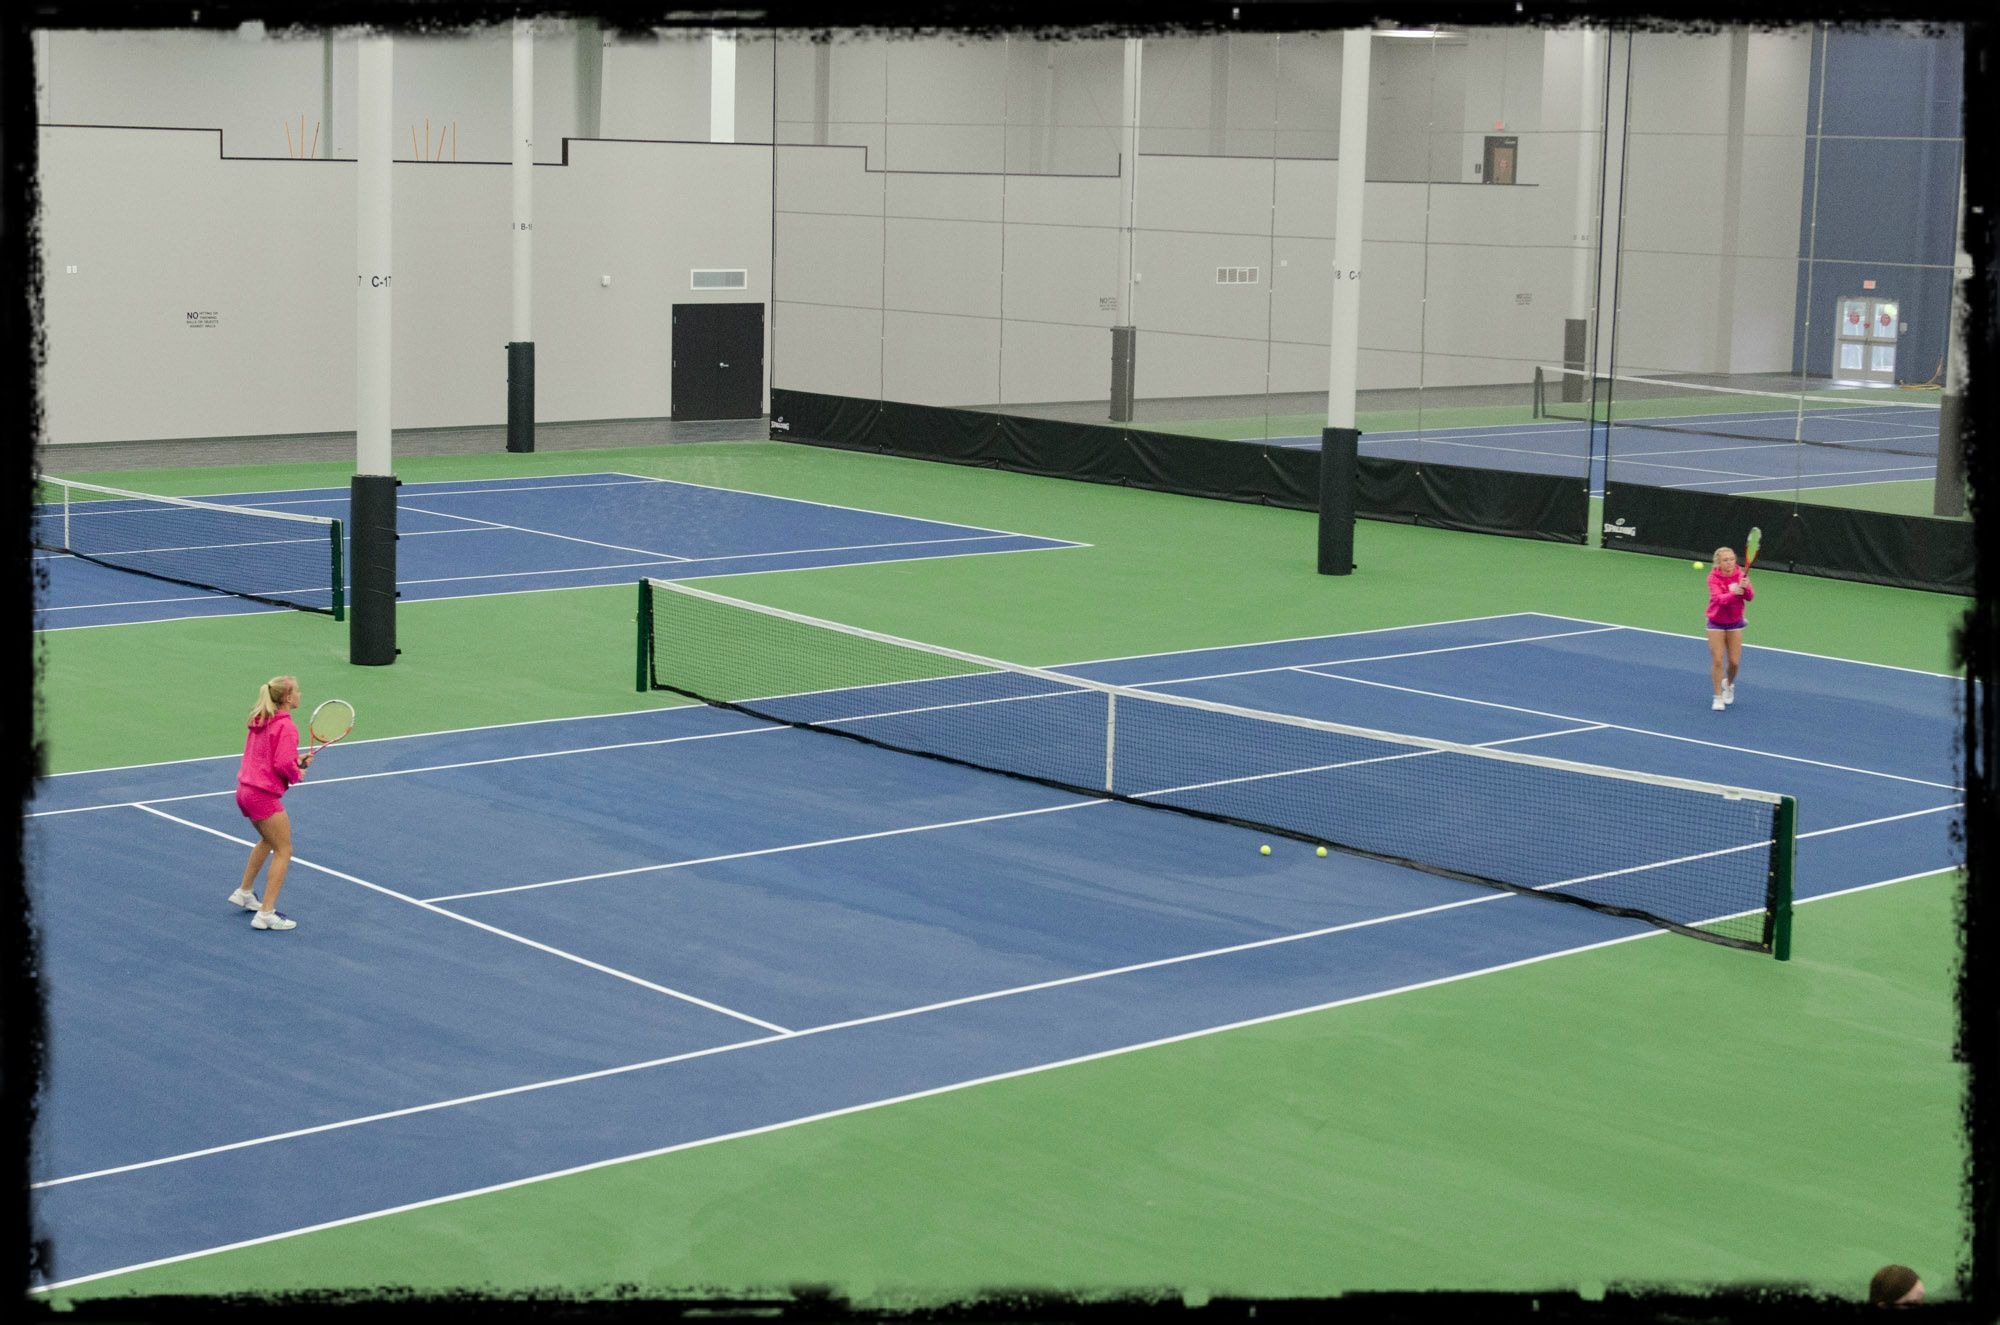 Spooky Nook Sports Has 6 Indoor Tennis Courts!